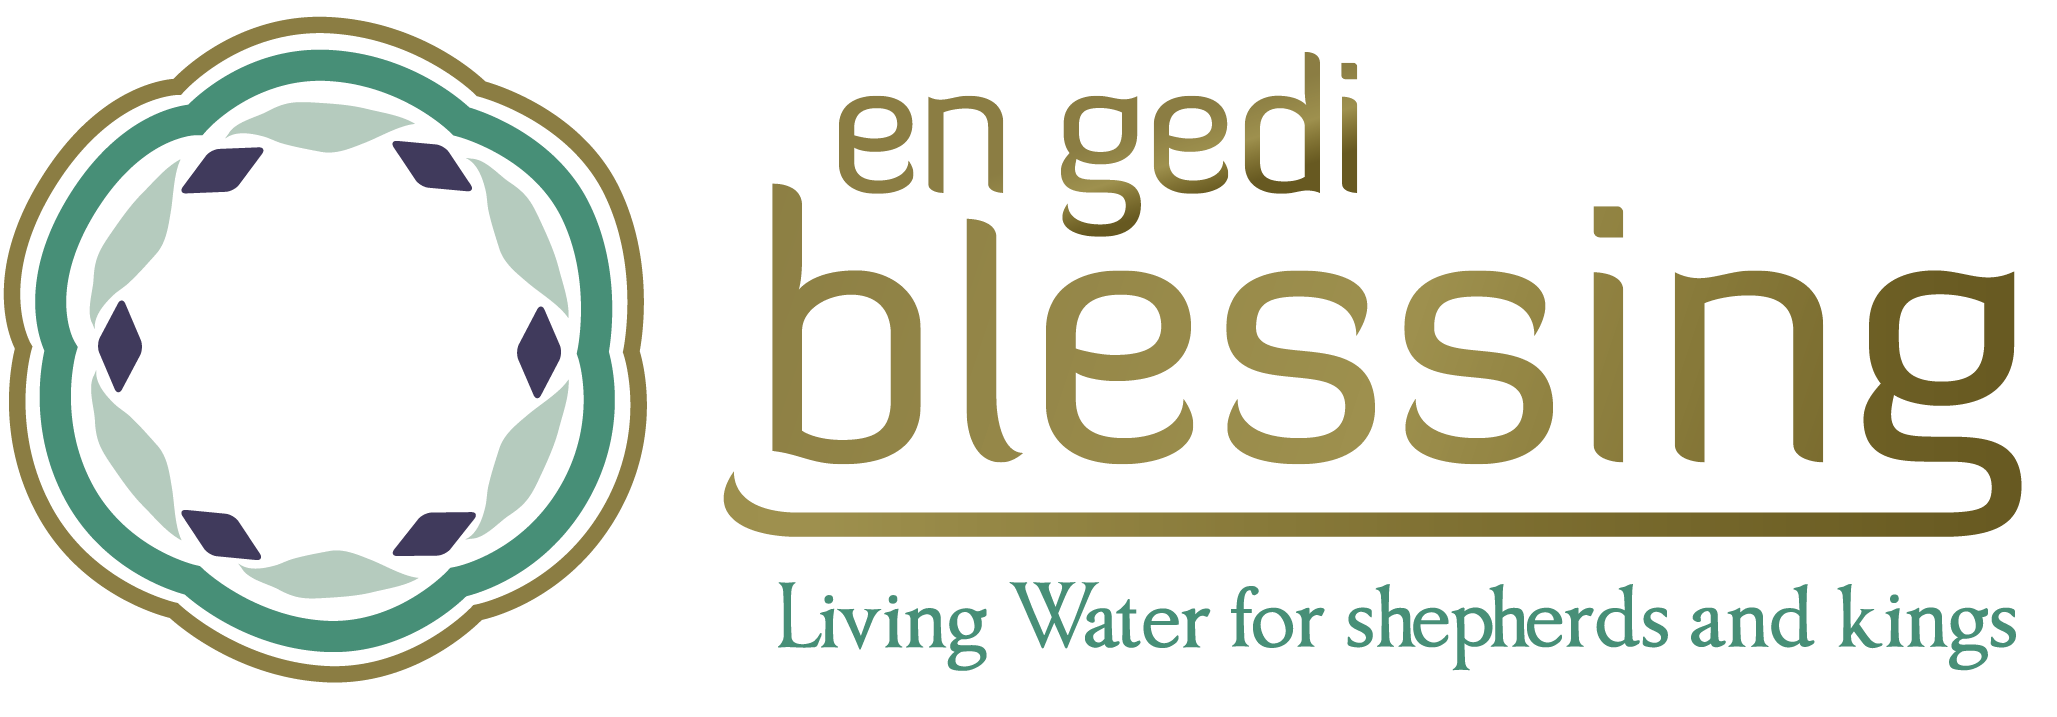 En Gedi Blessing | En Gedi Blessing   My Account